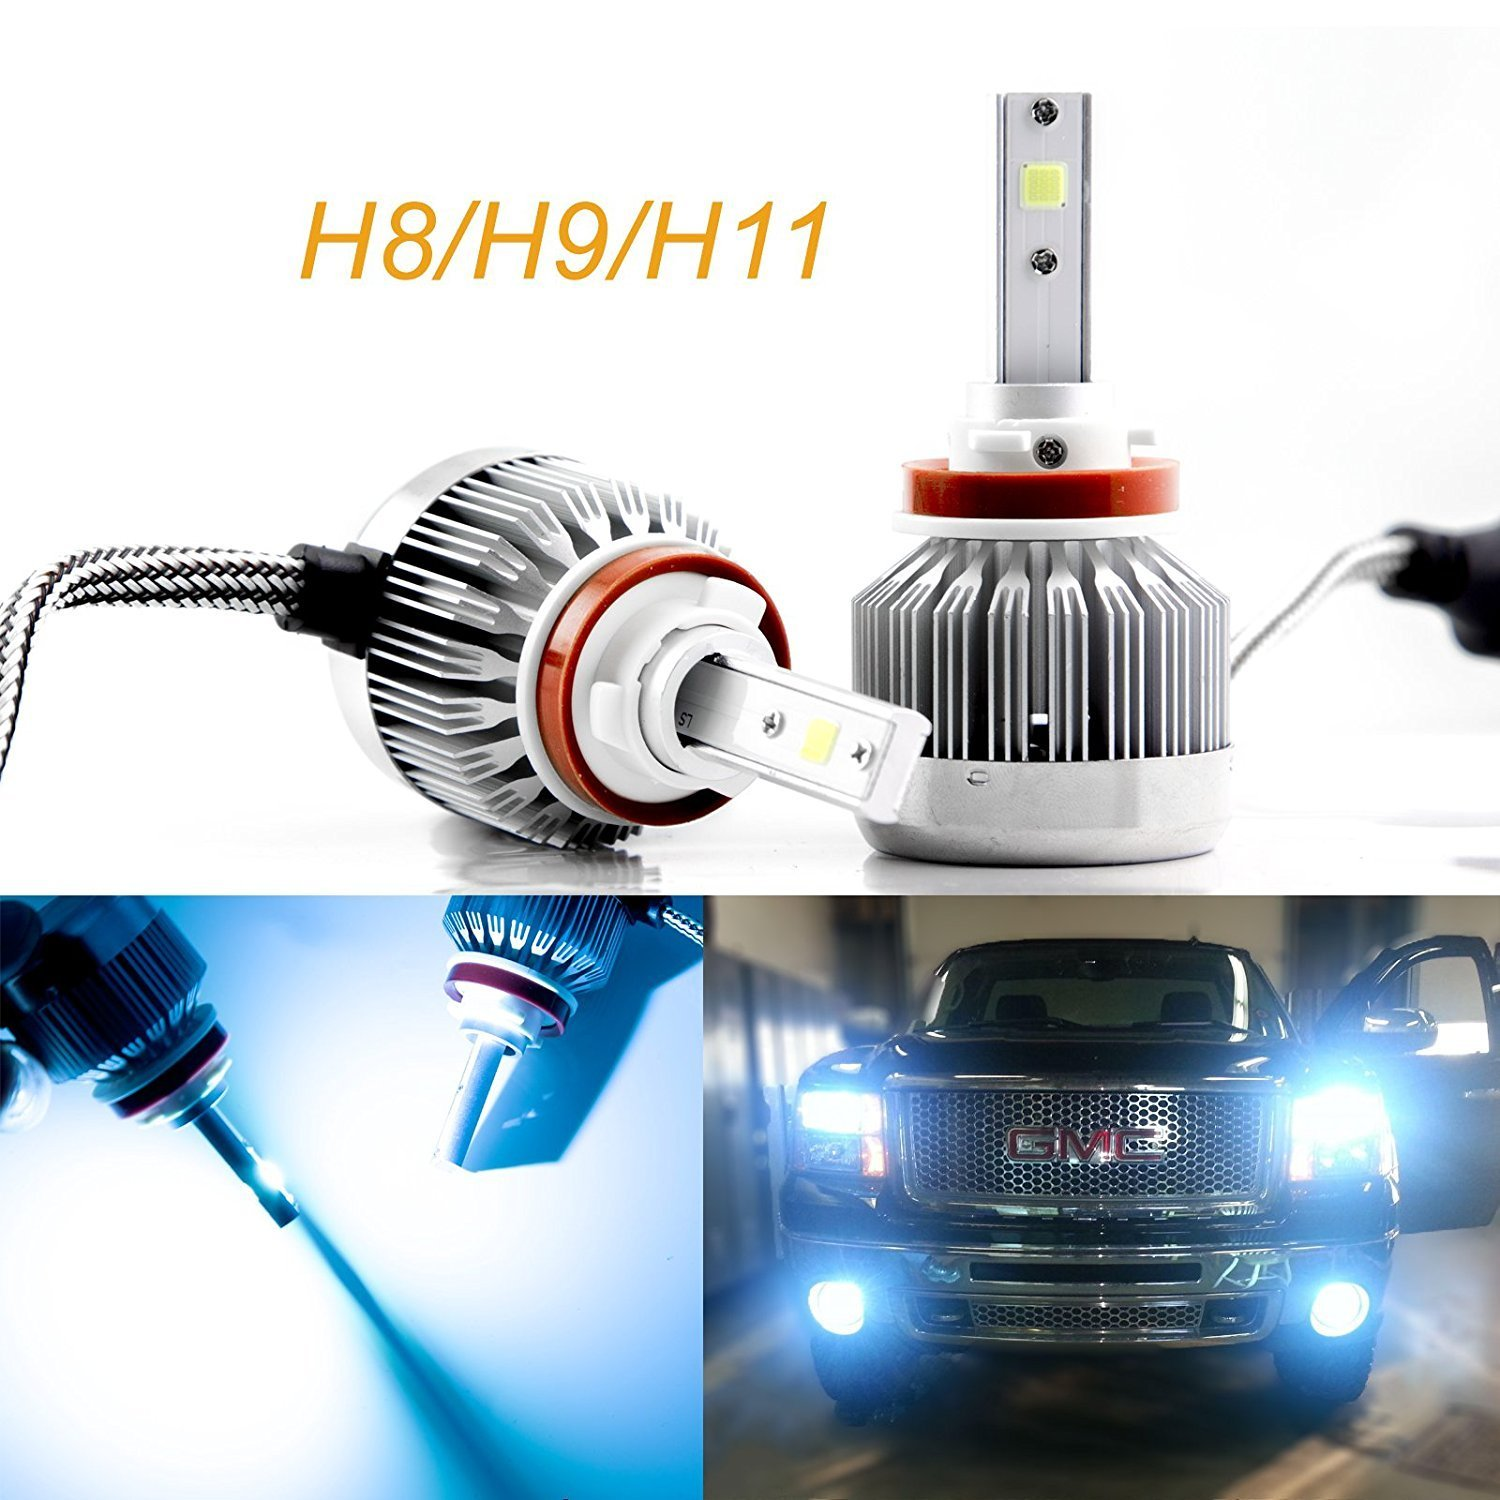 2pcs H8 H9 H11 Ice Blue 8000K COB LED Headlight Bulbs Conversion Kit For High/Low Beam Daytime Running Lights Xotic Tech Direct .